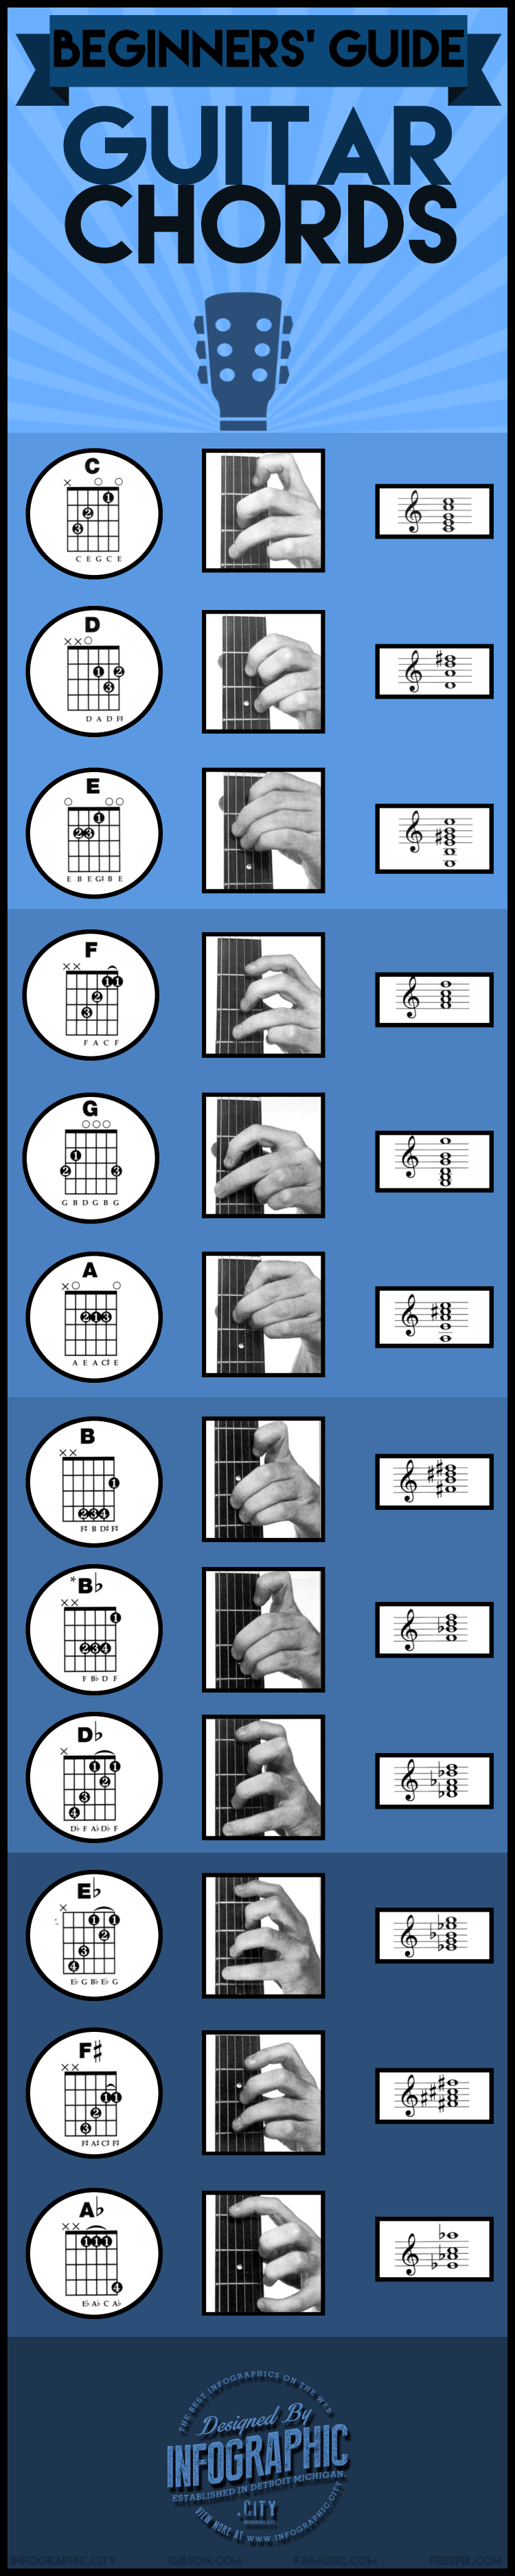 Piano chords chart by skcin7iantart on deviantart music a beginners guide to guitar chords infographic hexwebz Choice Image